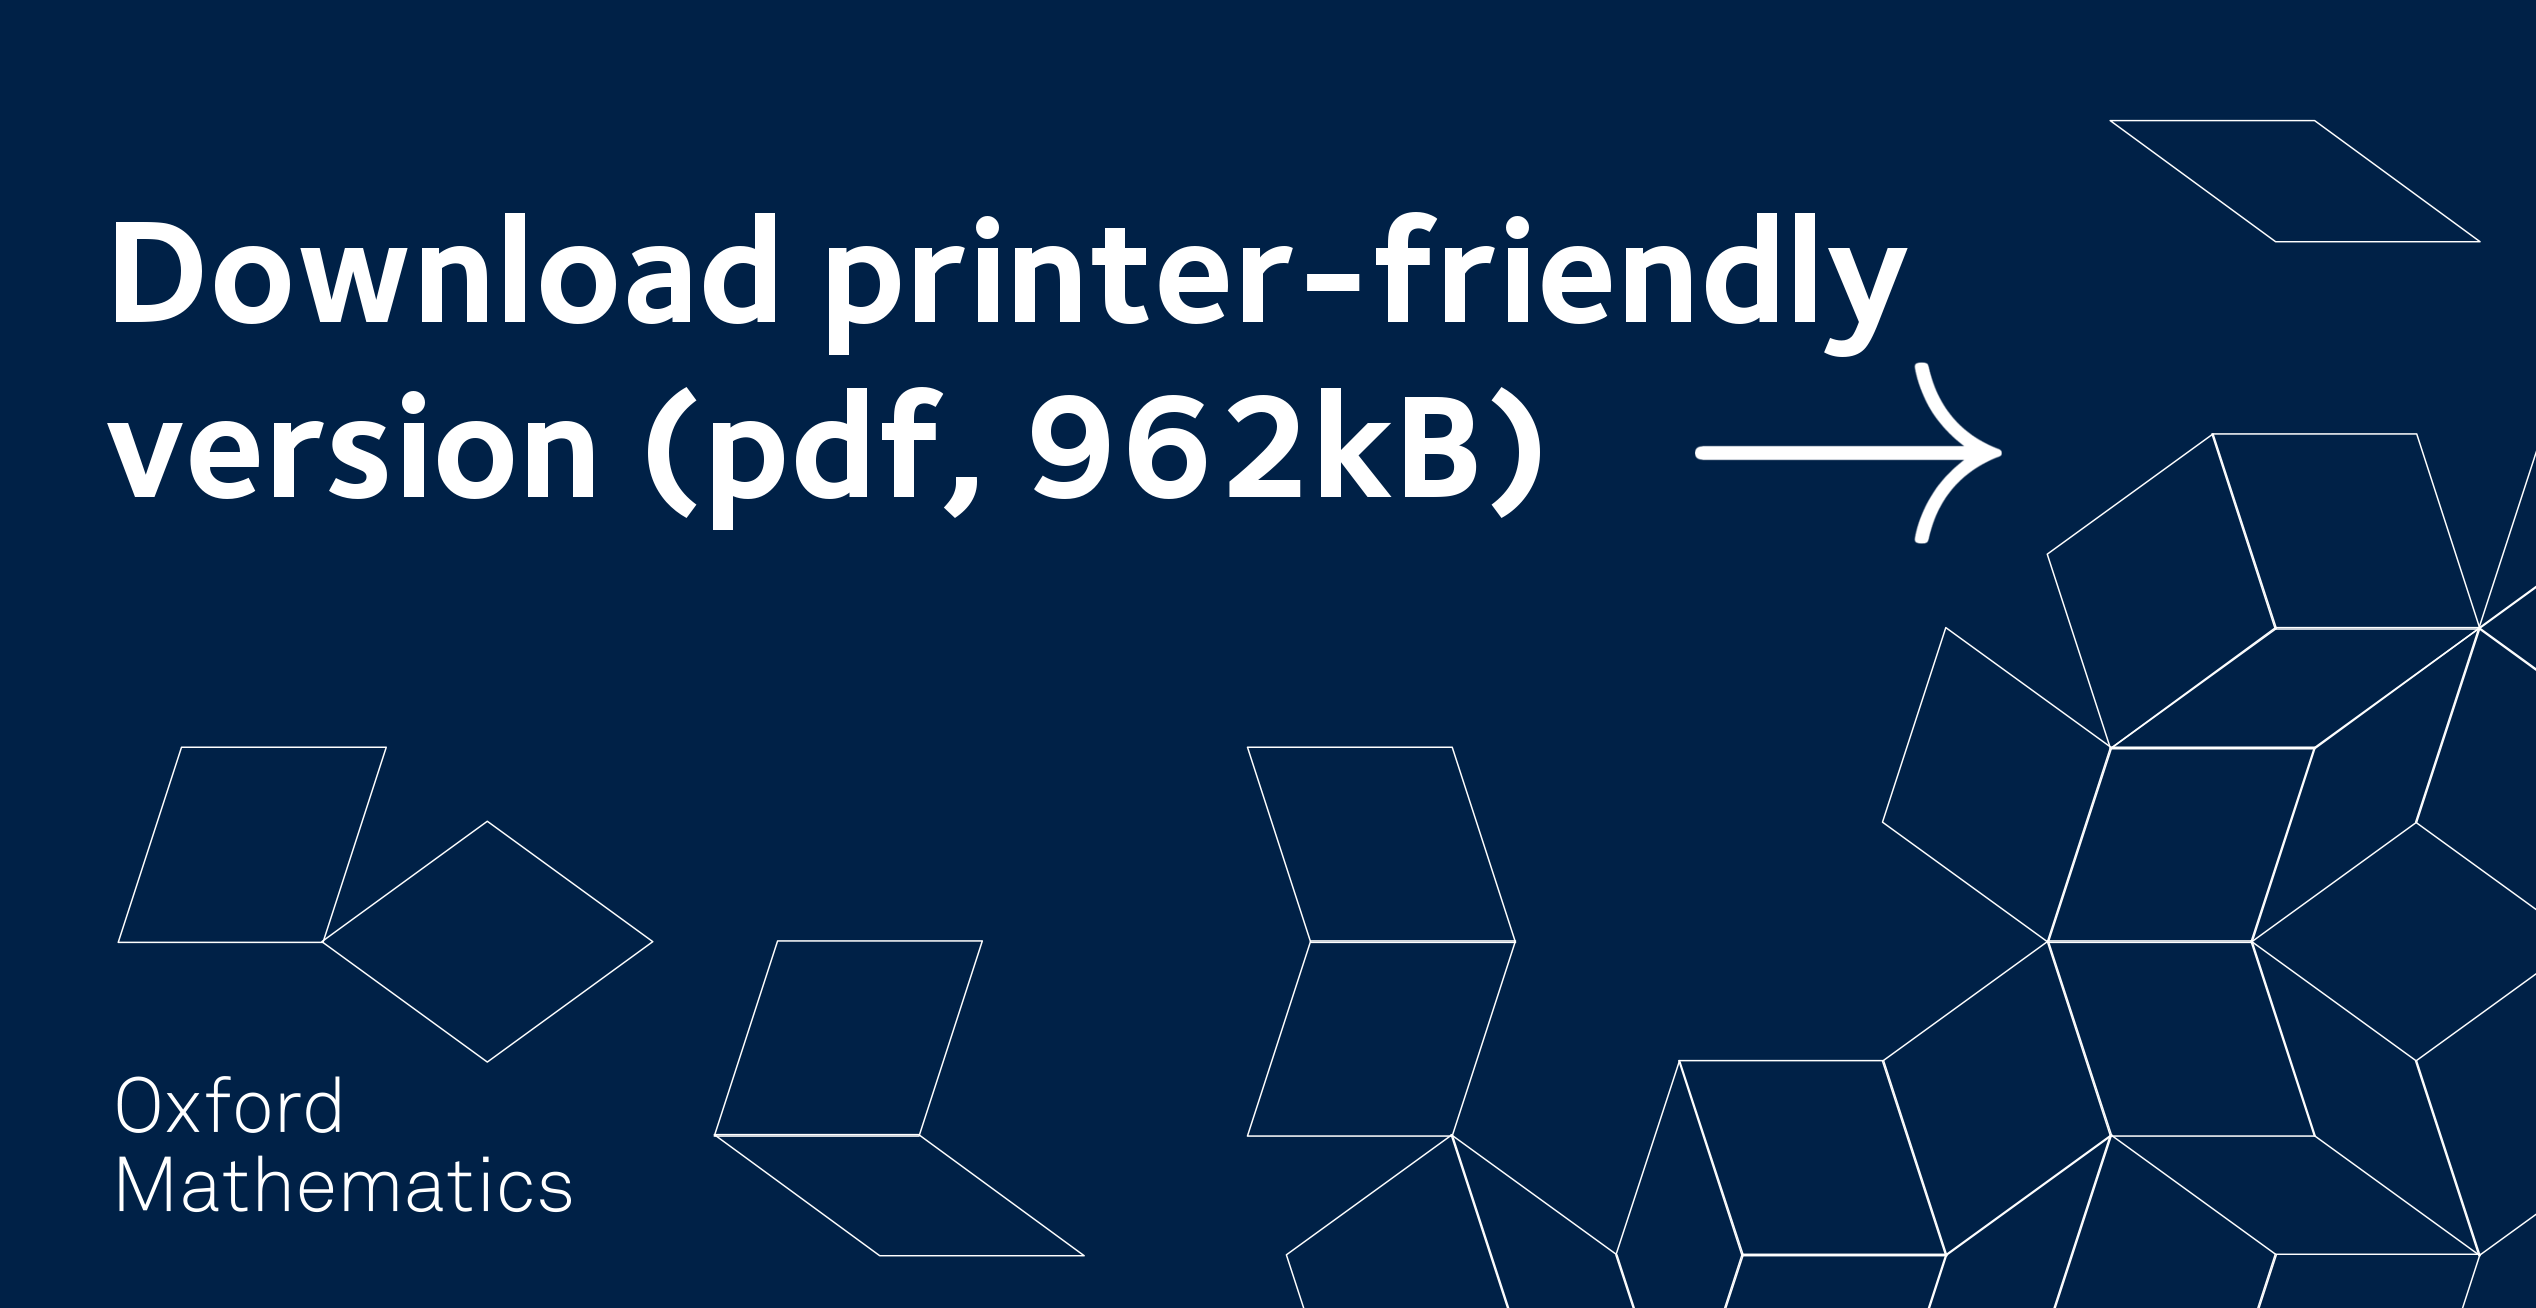 Download printer-friendly version